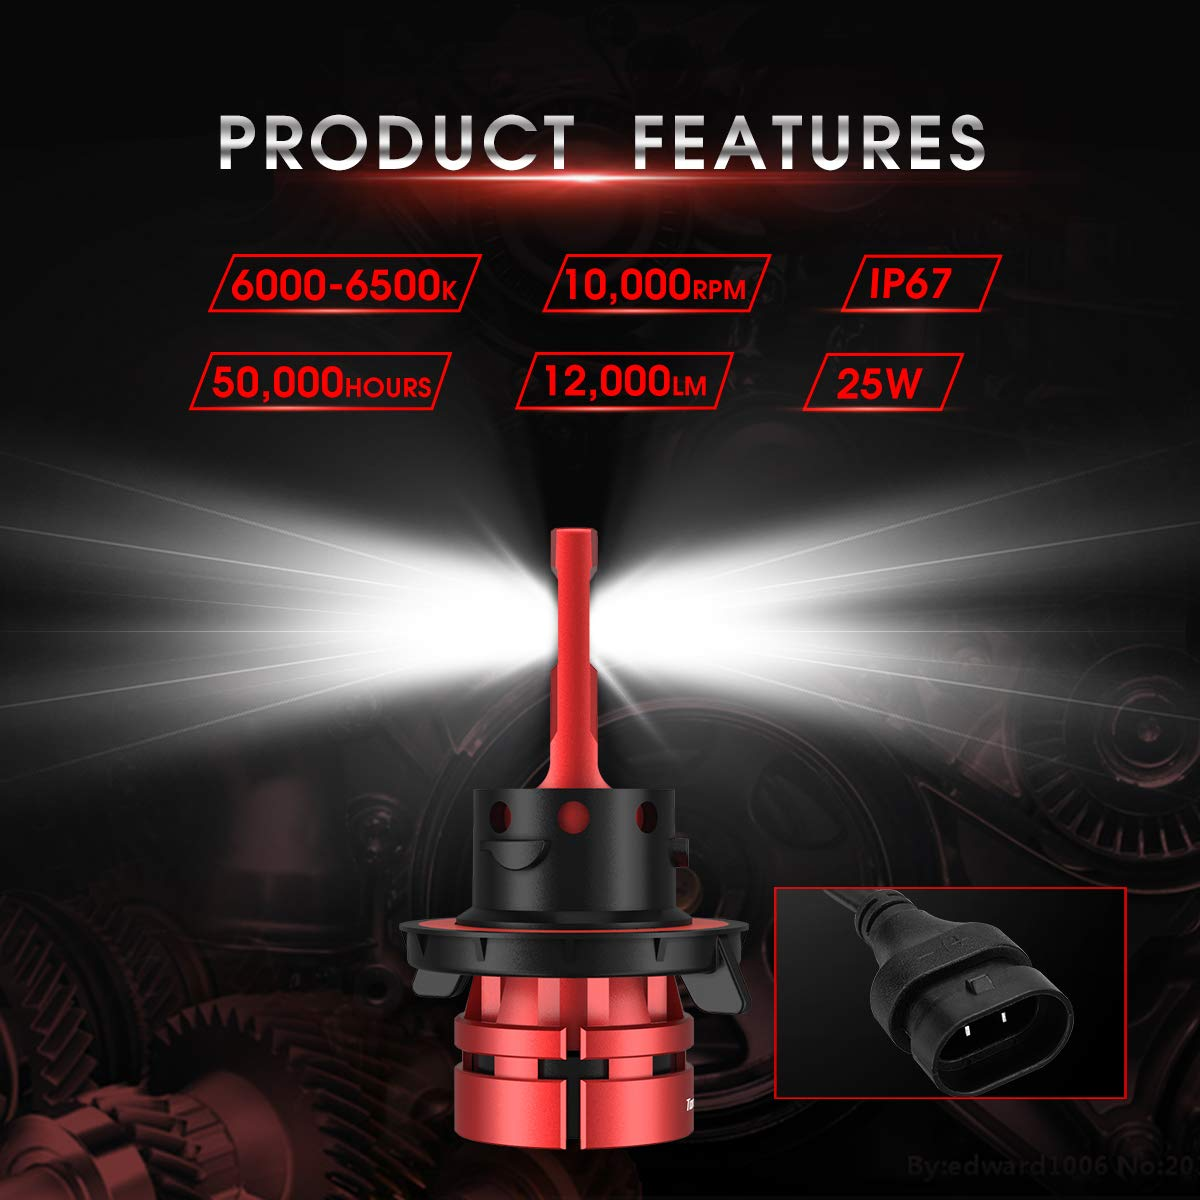 Torchbeam H13 9008 LED Headlight Bulbs 2019 Upgraded Mini Size Extremely Bright 12000LM 6000K 6 CSP Chips Cool White Replacement Bulbs